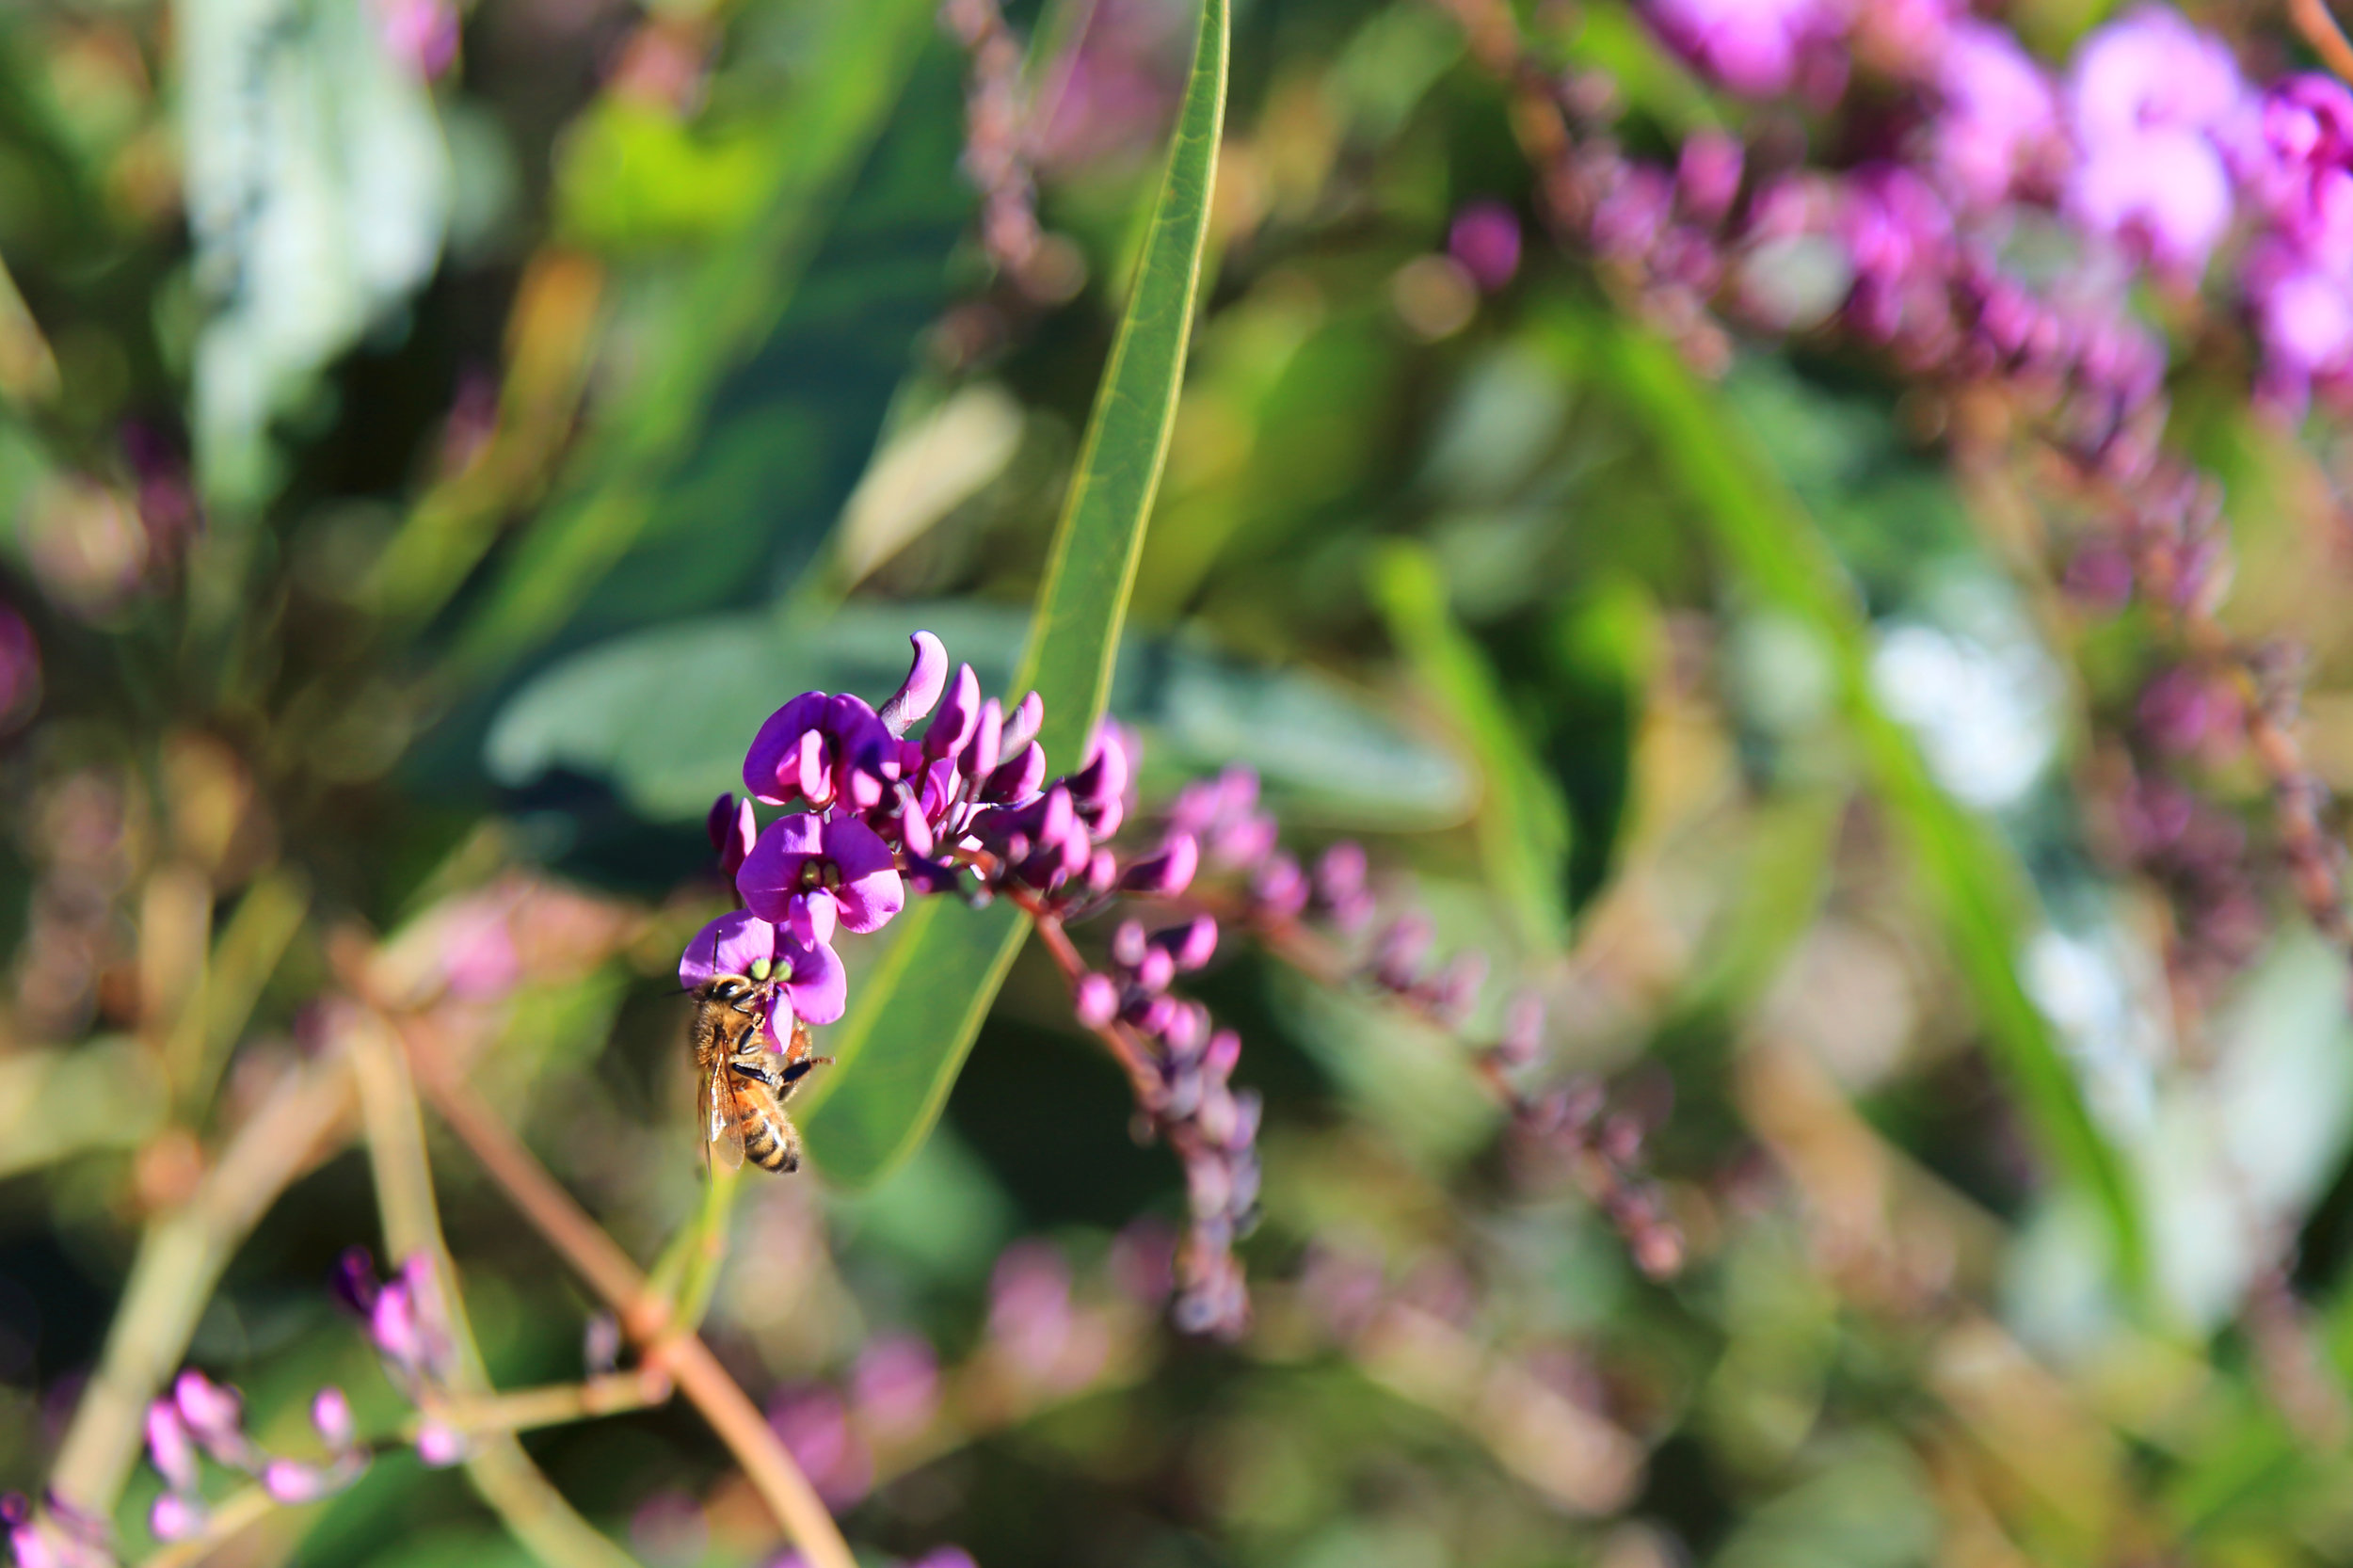 A honeybee visits a Hardenbergia blossom in the Australian Garden